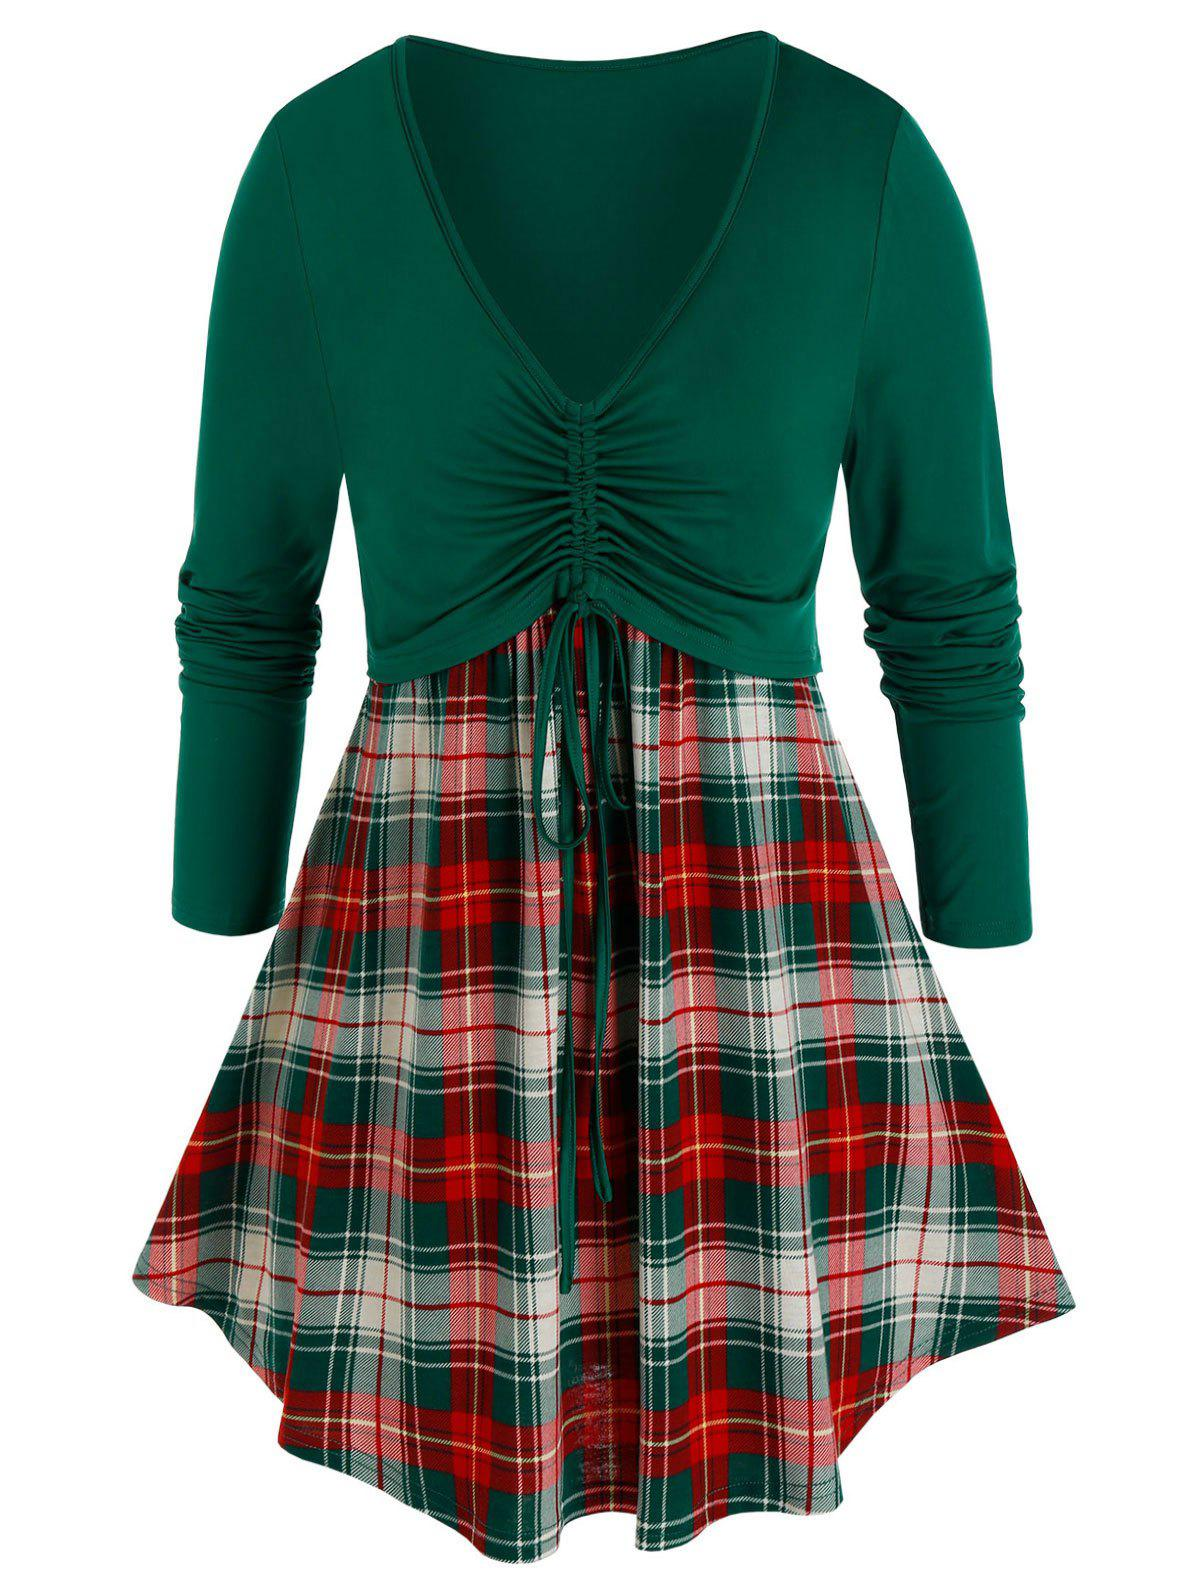 Plus Size Plaid Cinched Tie Contrast Long Sleeve Tee - DEEP GREEN 5X